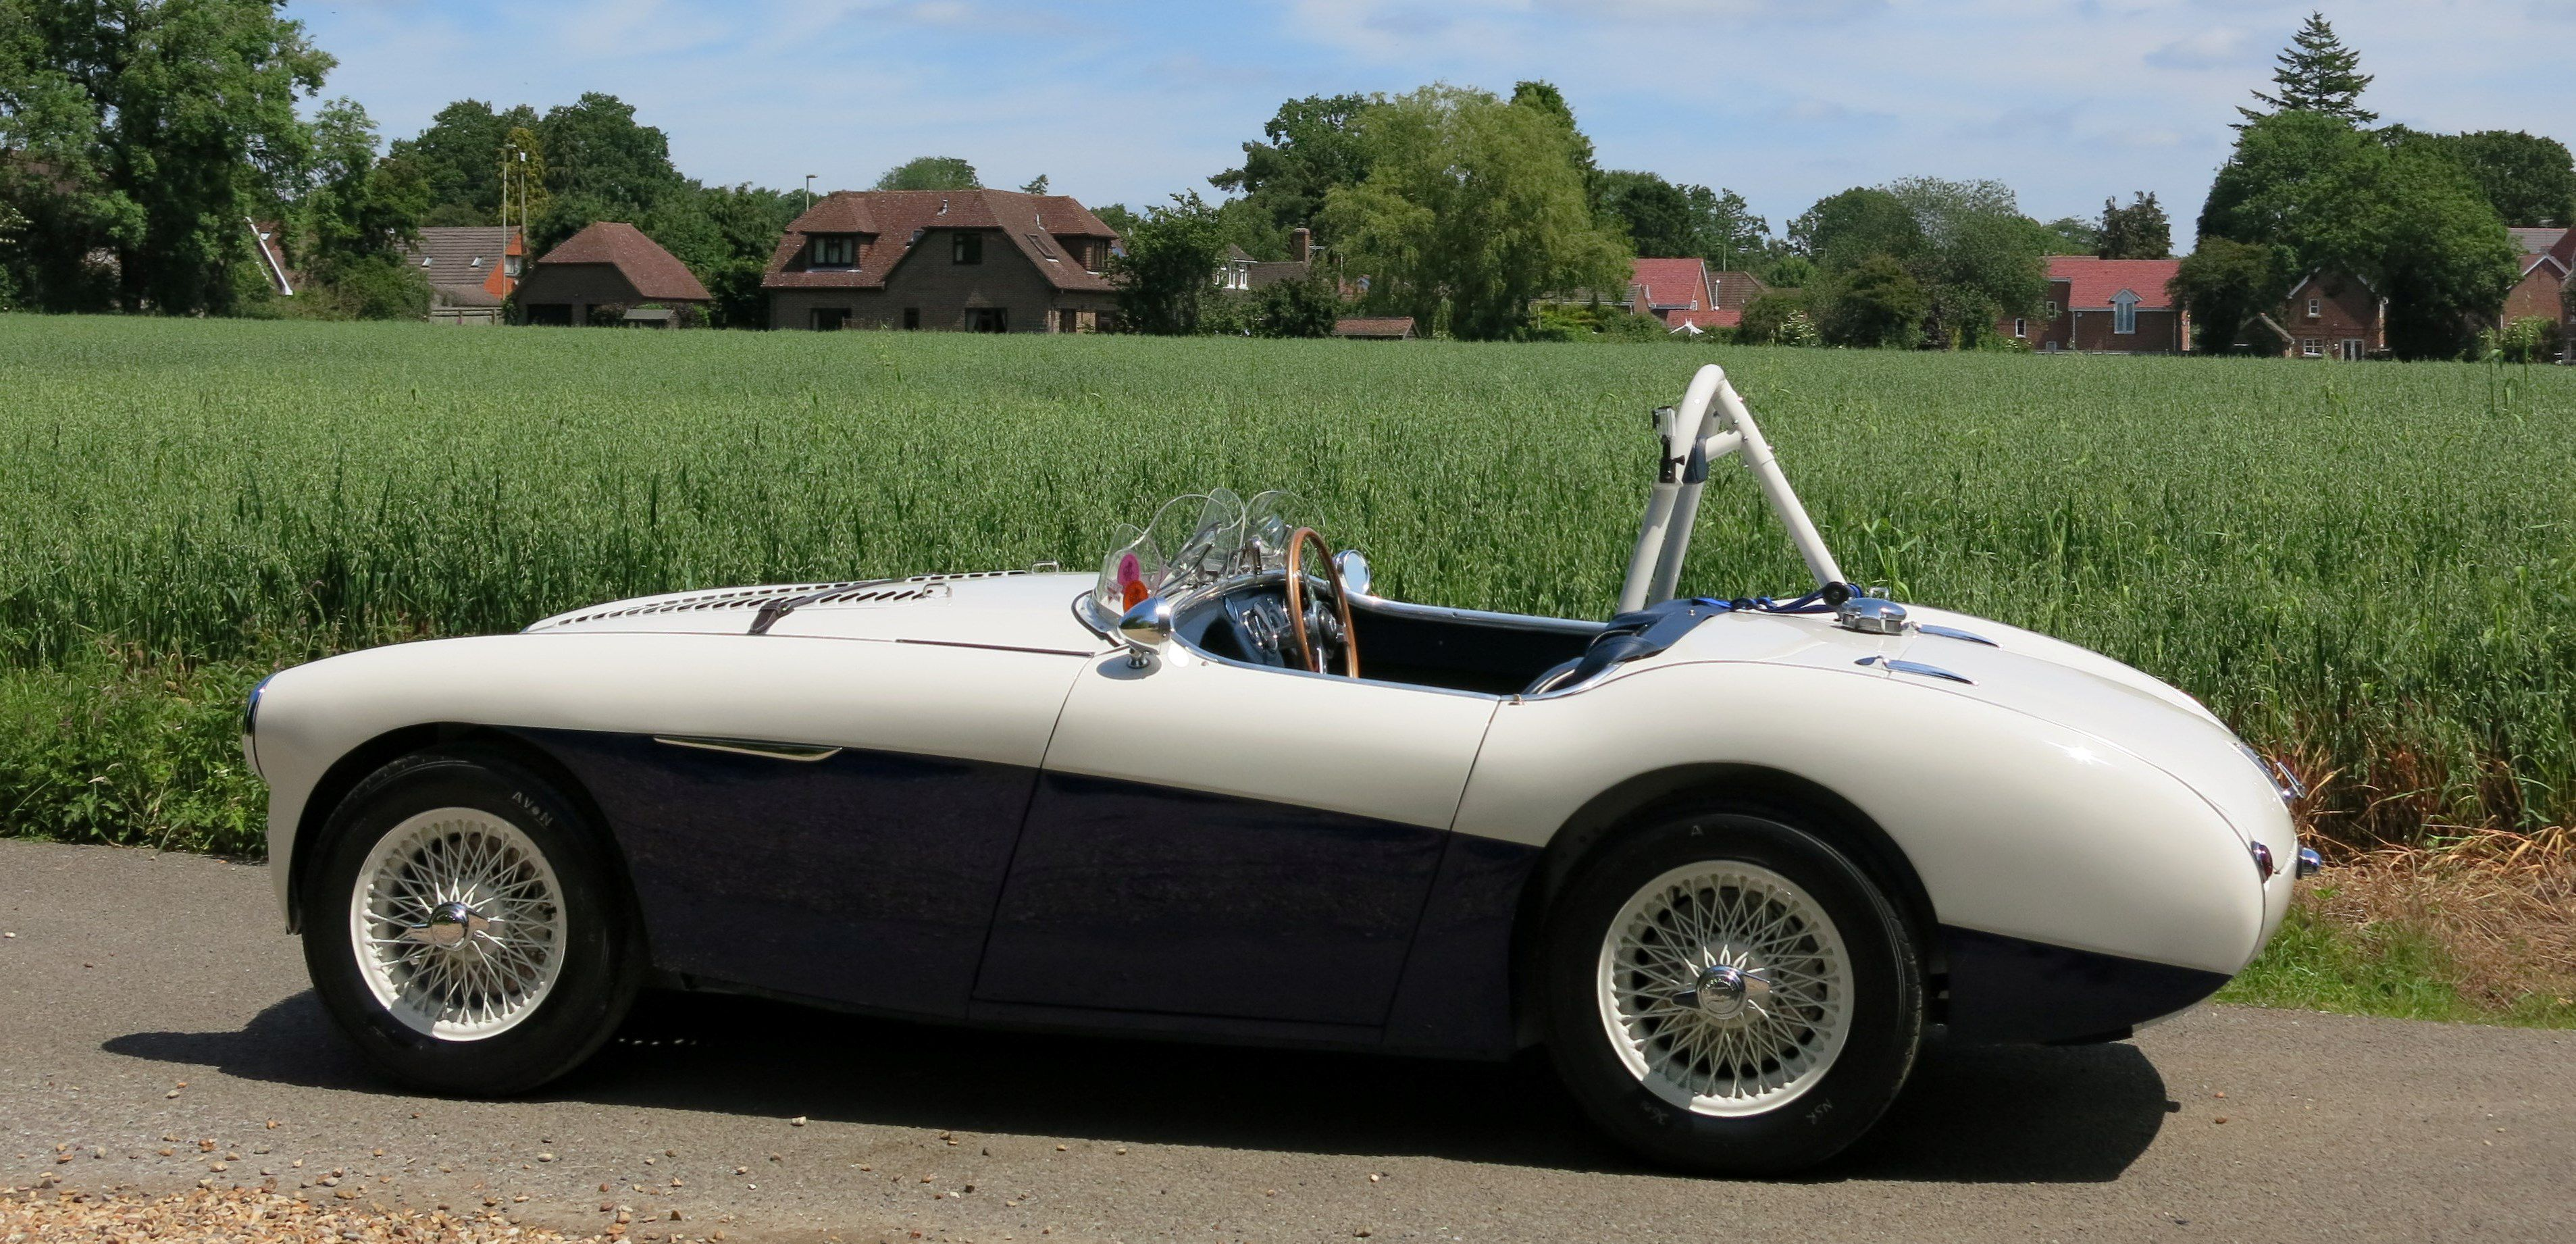 Rawles Classic Cars For Sale